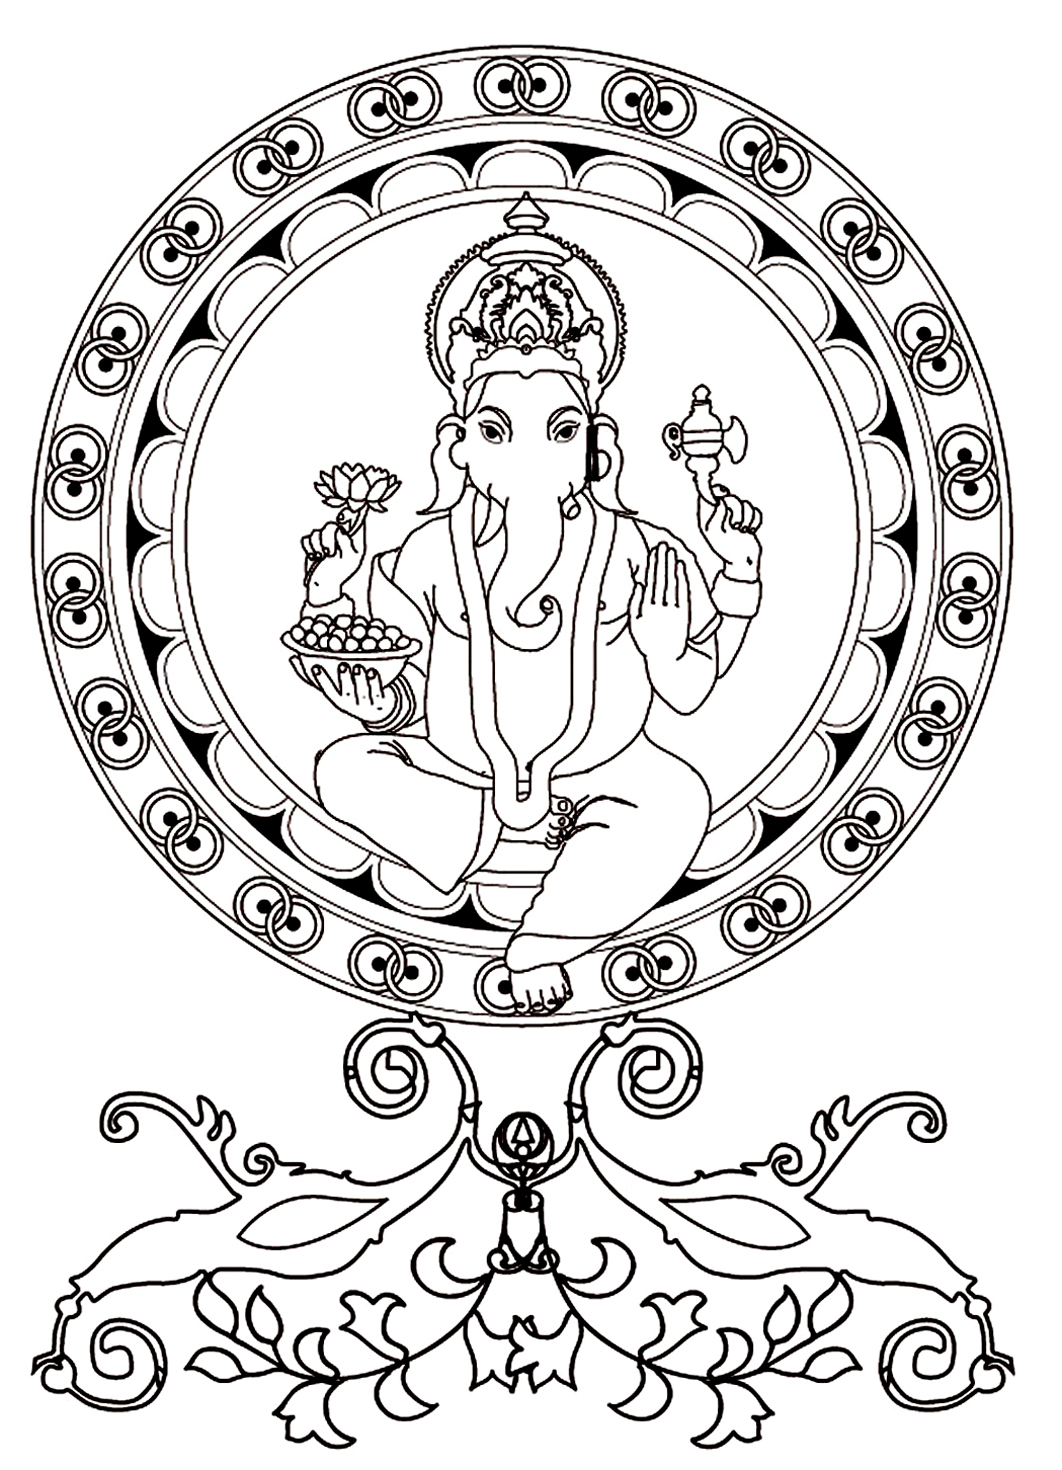 ganesh coloring pages Ganesh the god of wisdom   India Adult Coloring Pages ganesh coloring pages